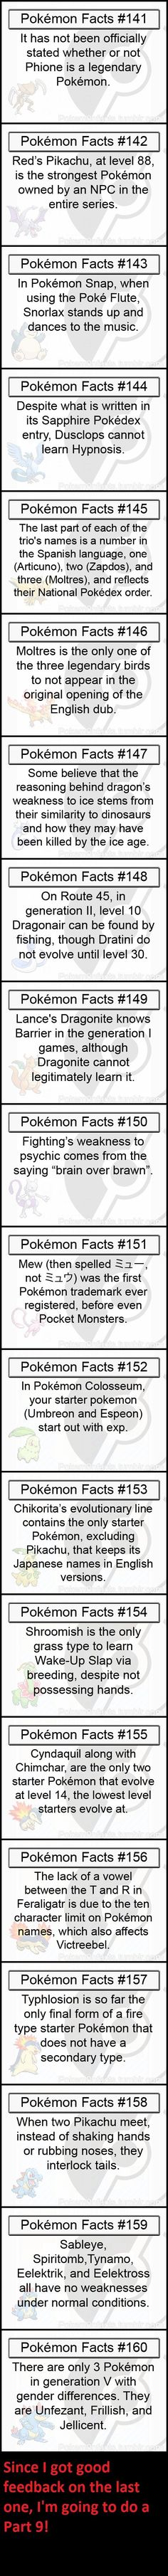 Cool and surprising Poke'mon facts.